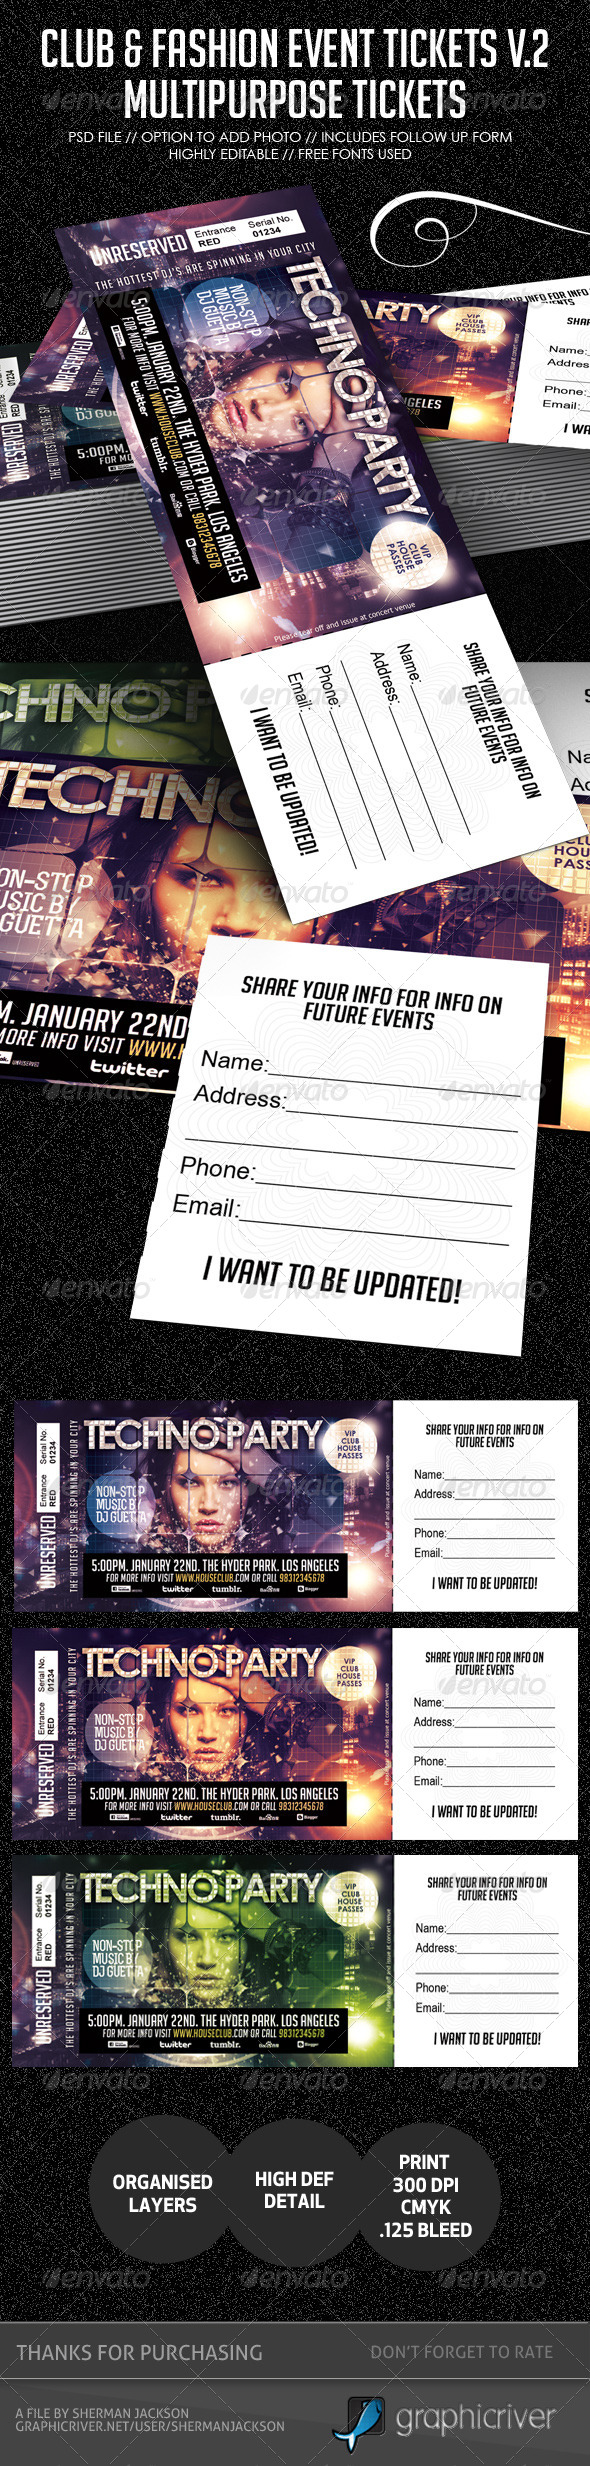 Club, Fashion & Event Multipurpose Tickets V.2 - Miscellaneous Print Templates